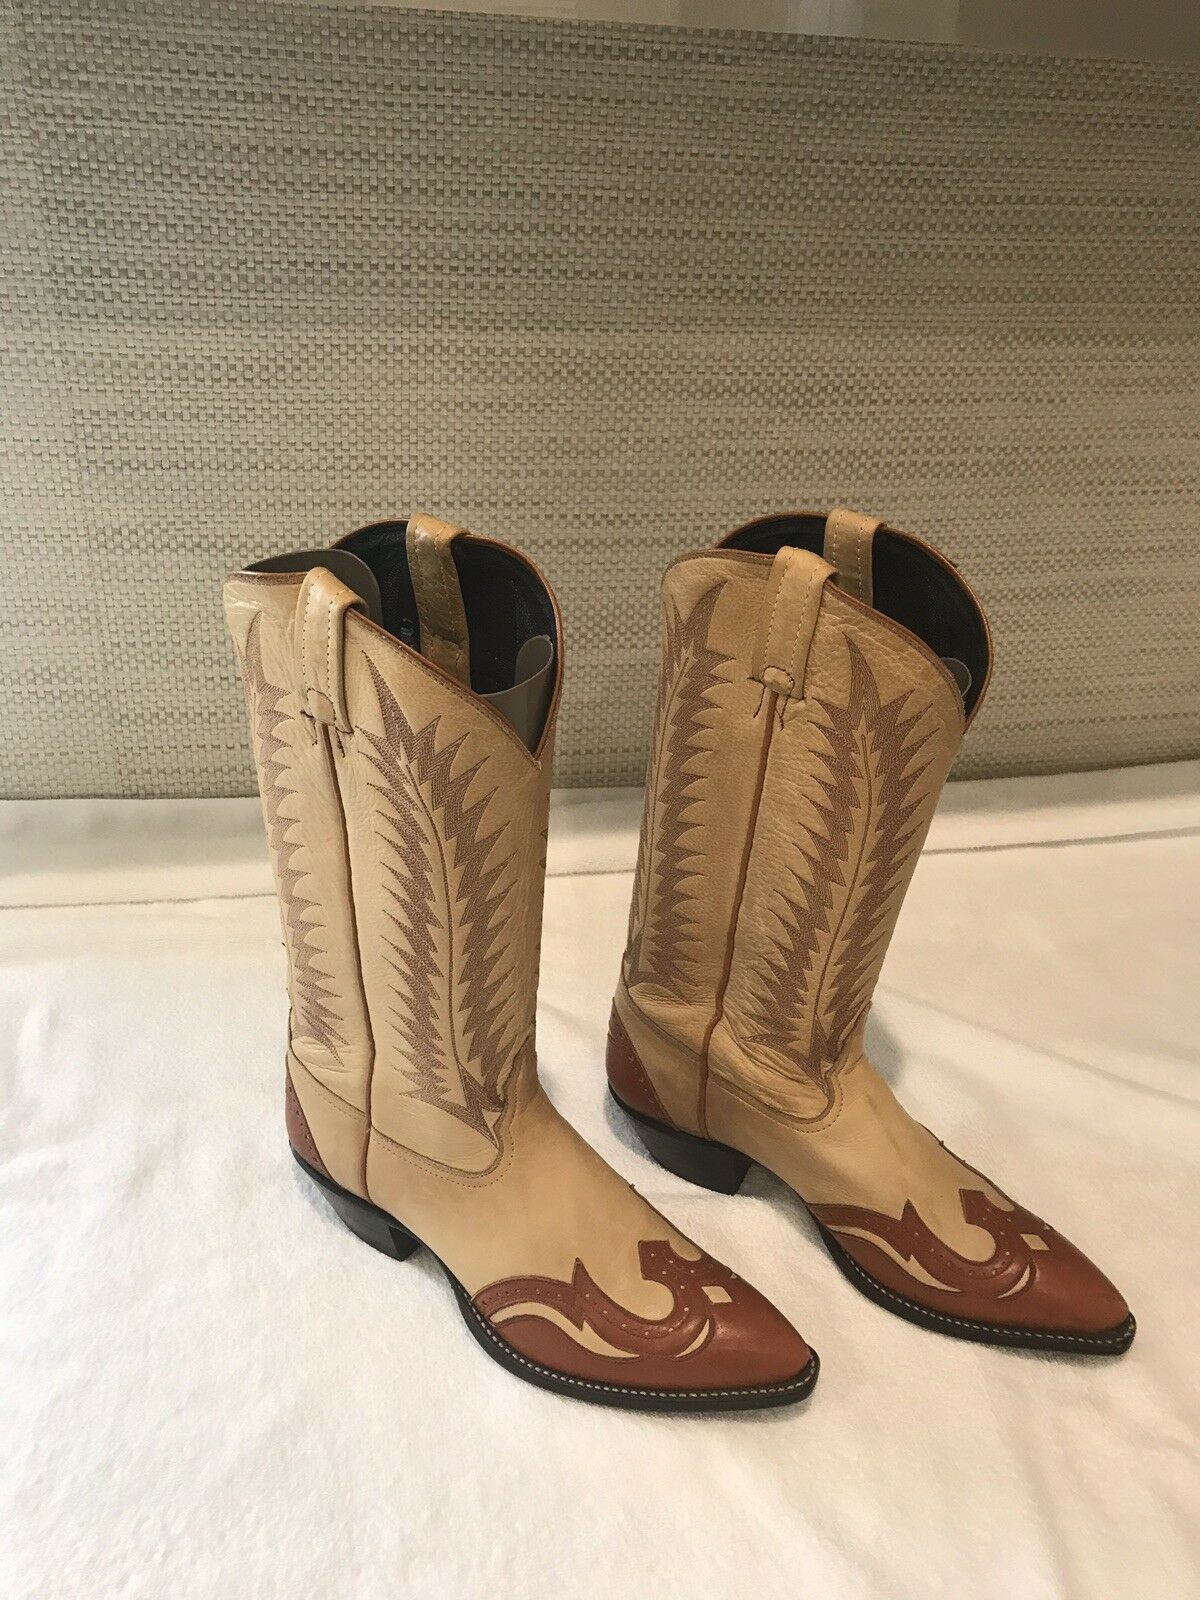 Tony Lama Vintage Cowgirl Boots 8 M